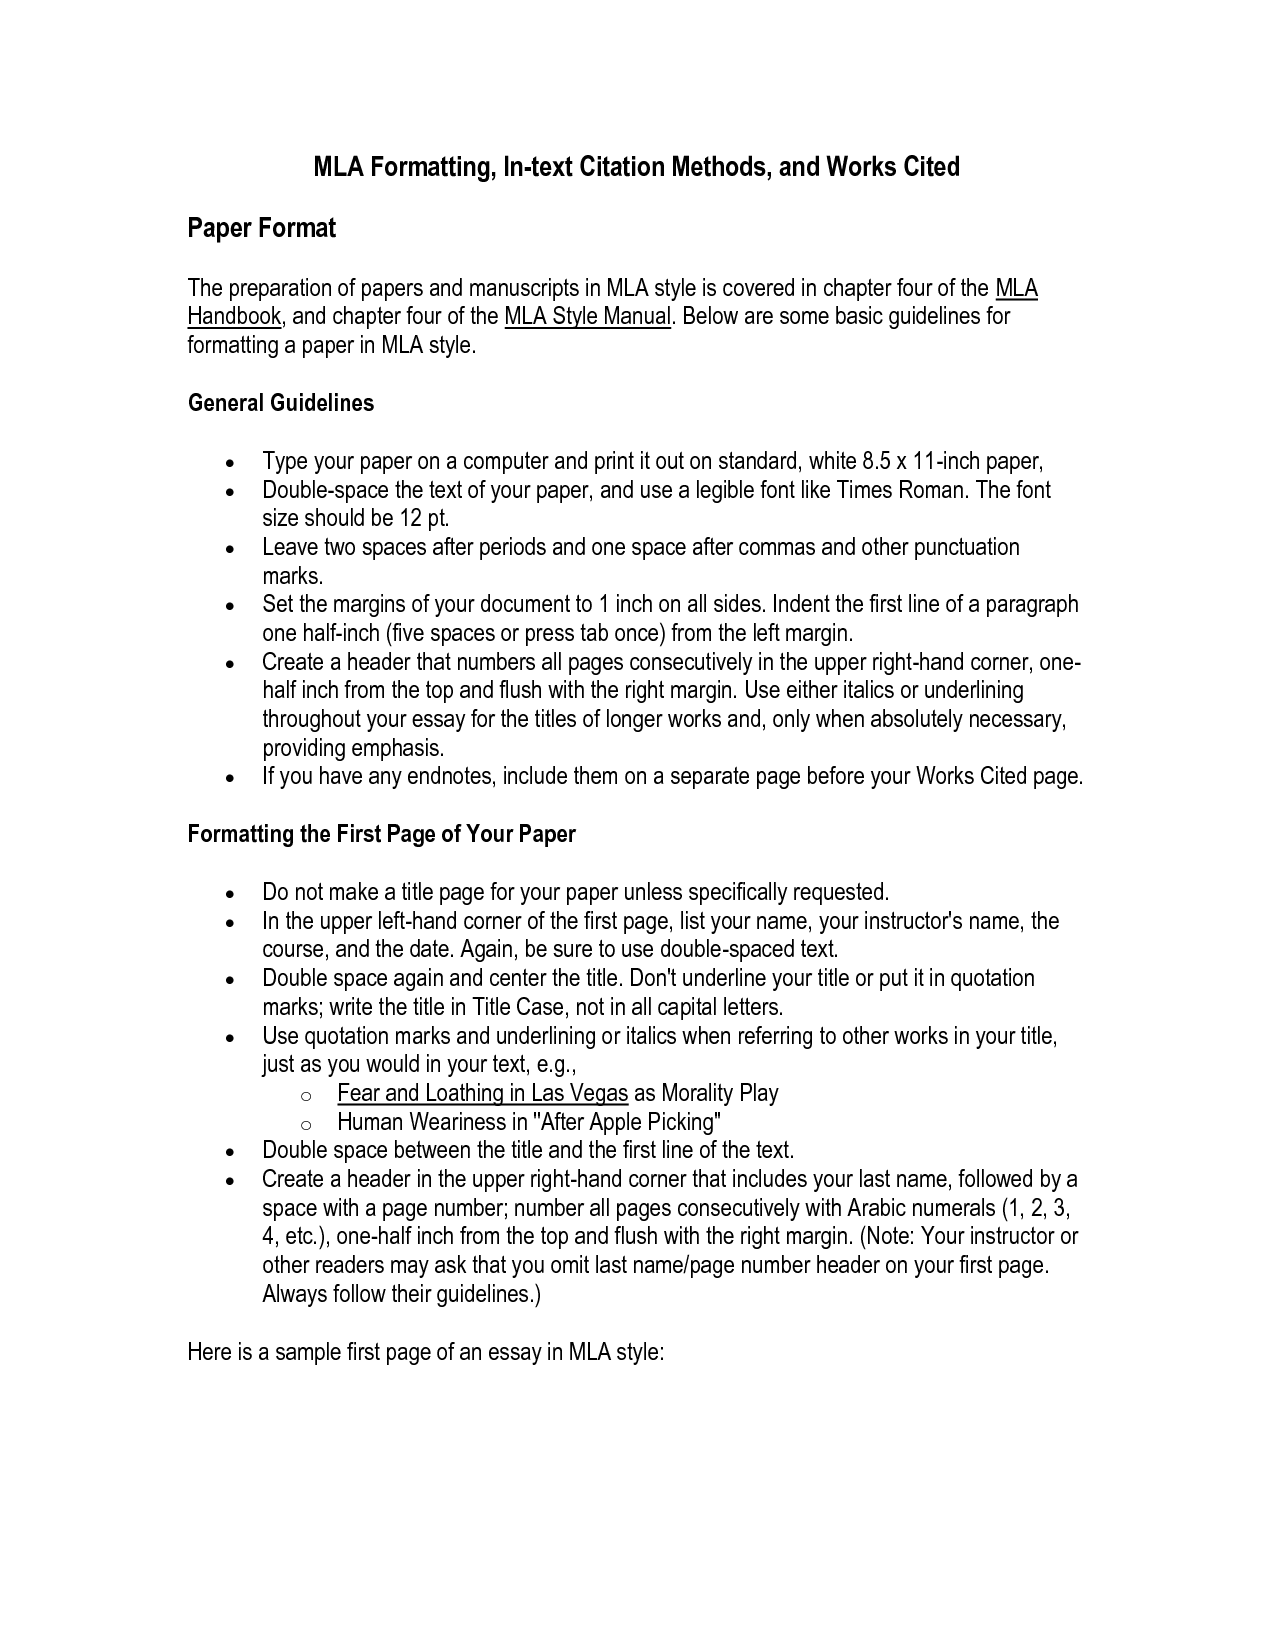 010 How To Cite In An Essay Mla Example Format Works Cited Text 82415 Archaicawful Sources Websites Movies A Paper Full